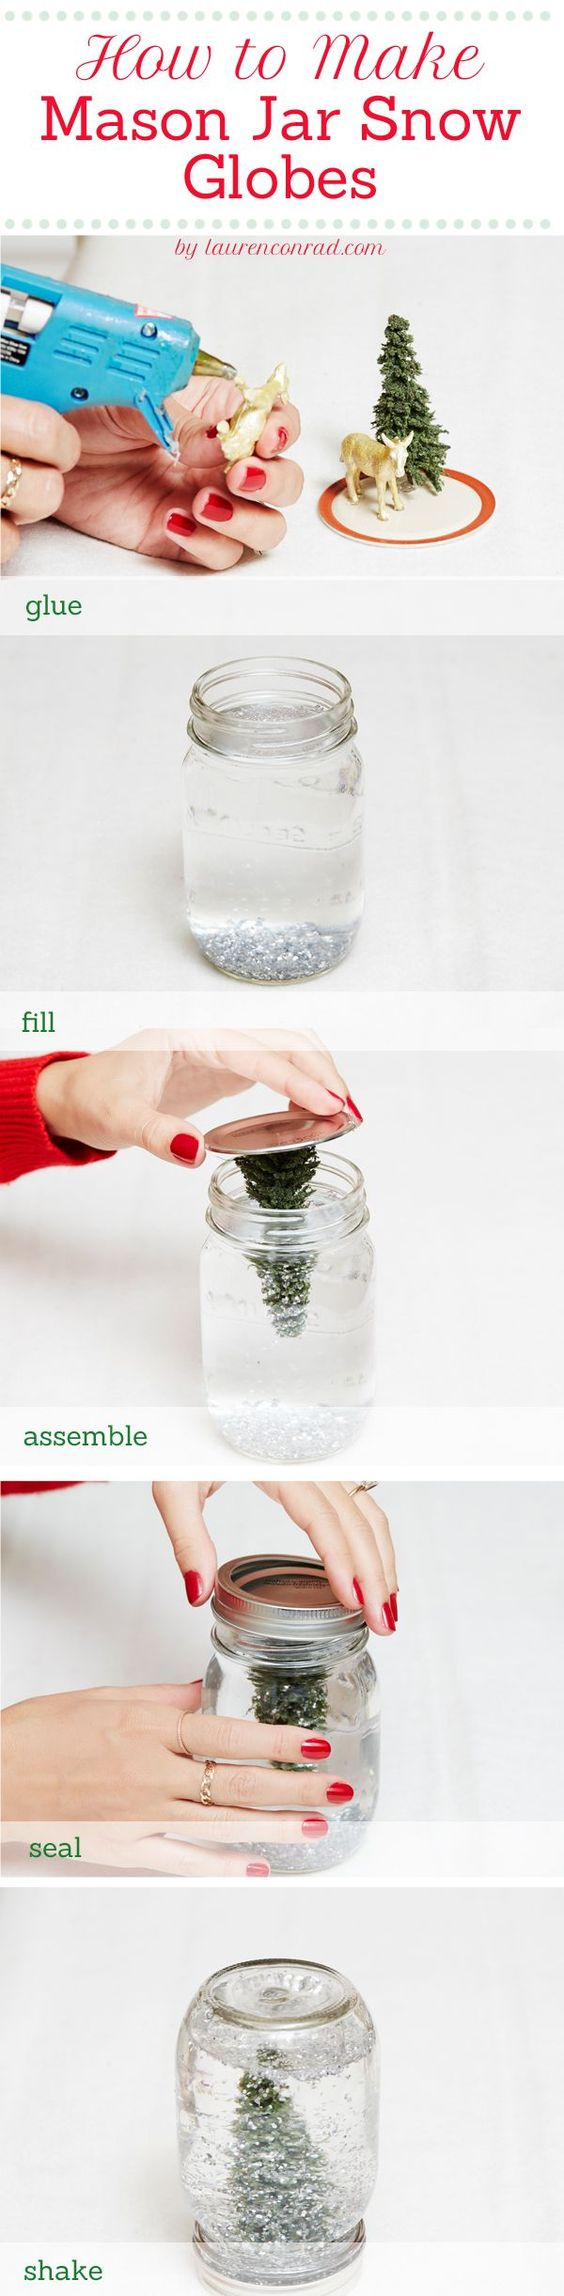 Decorating with Mason Jars • Lots of creative ideas and tutorials ...